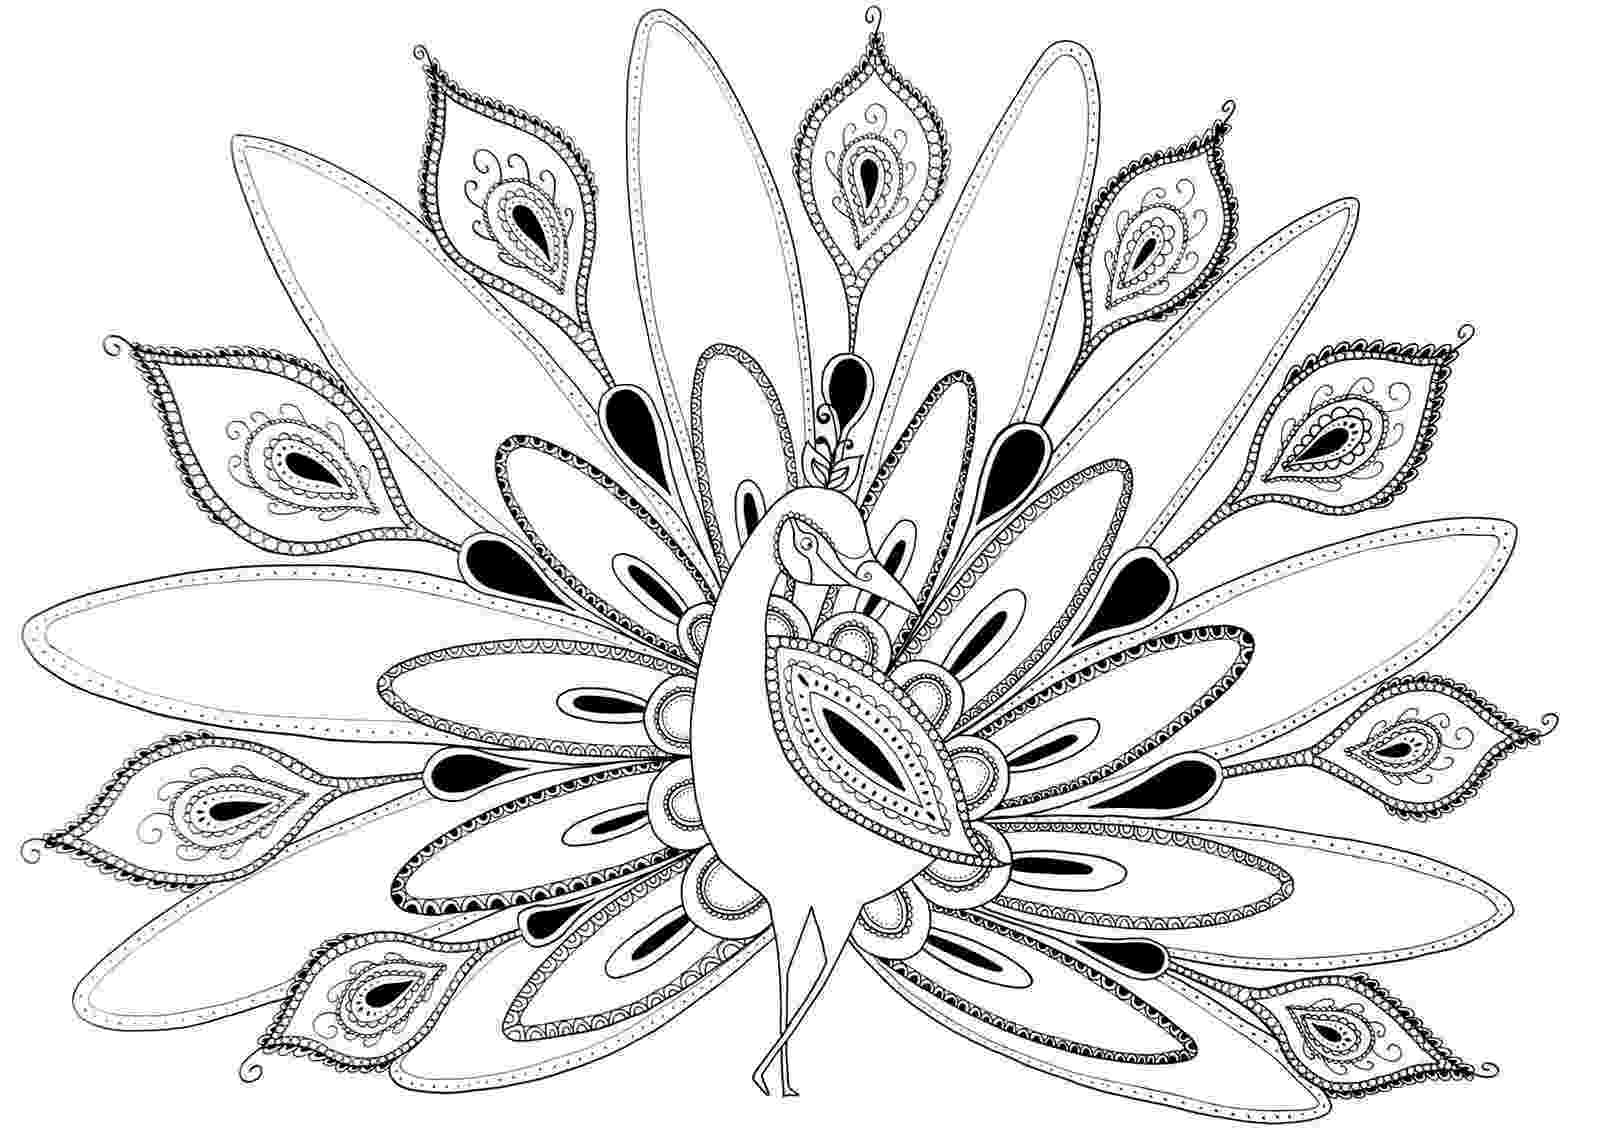 peacock coloring page peacock in flowers coloring page free printable coloring page peacock coloring